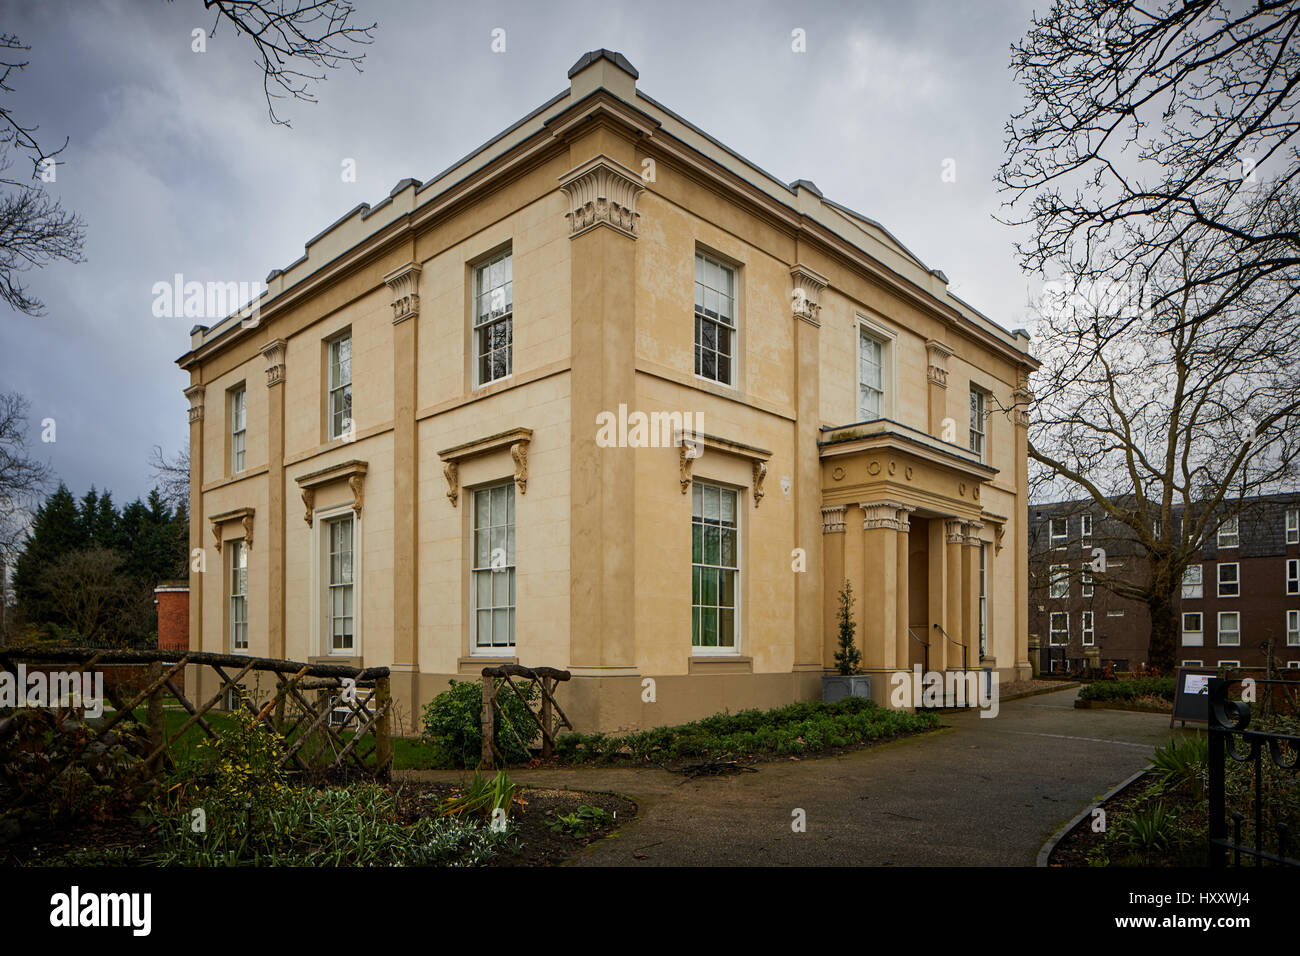 exterior elizabeth gaskell u0027s house grade ii listed neoclassical